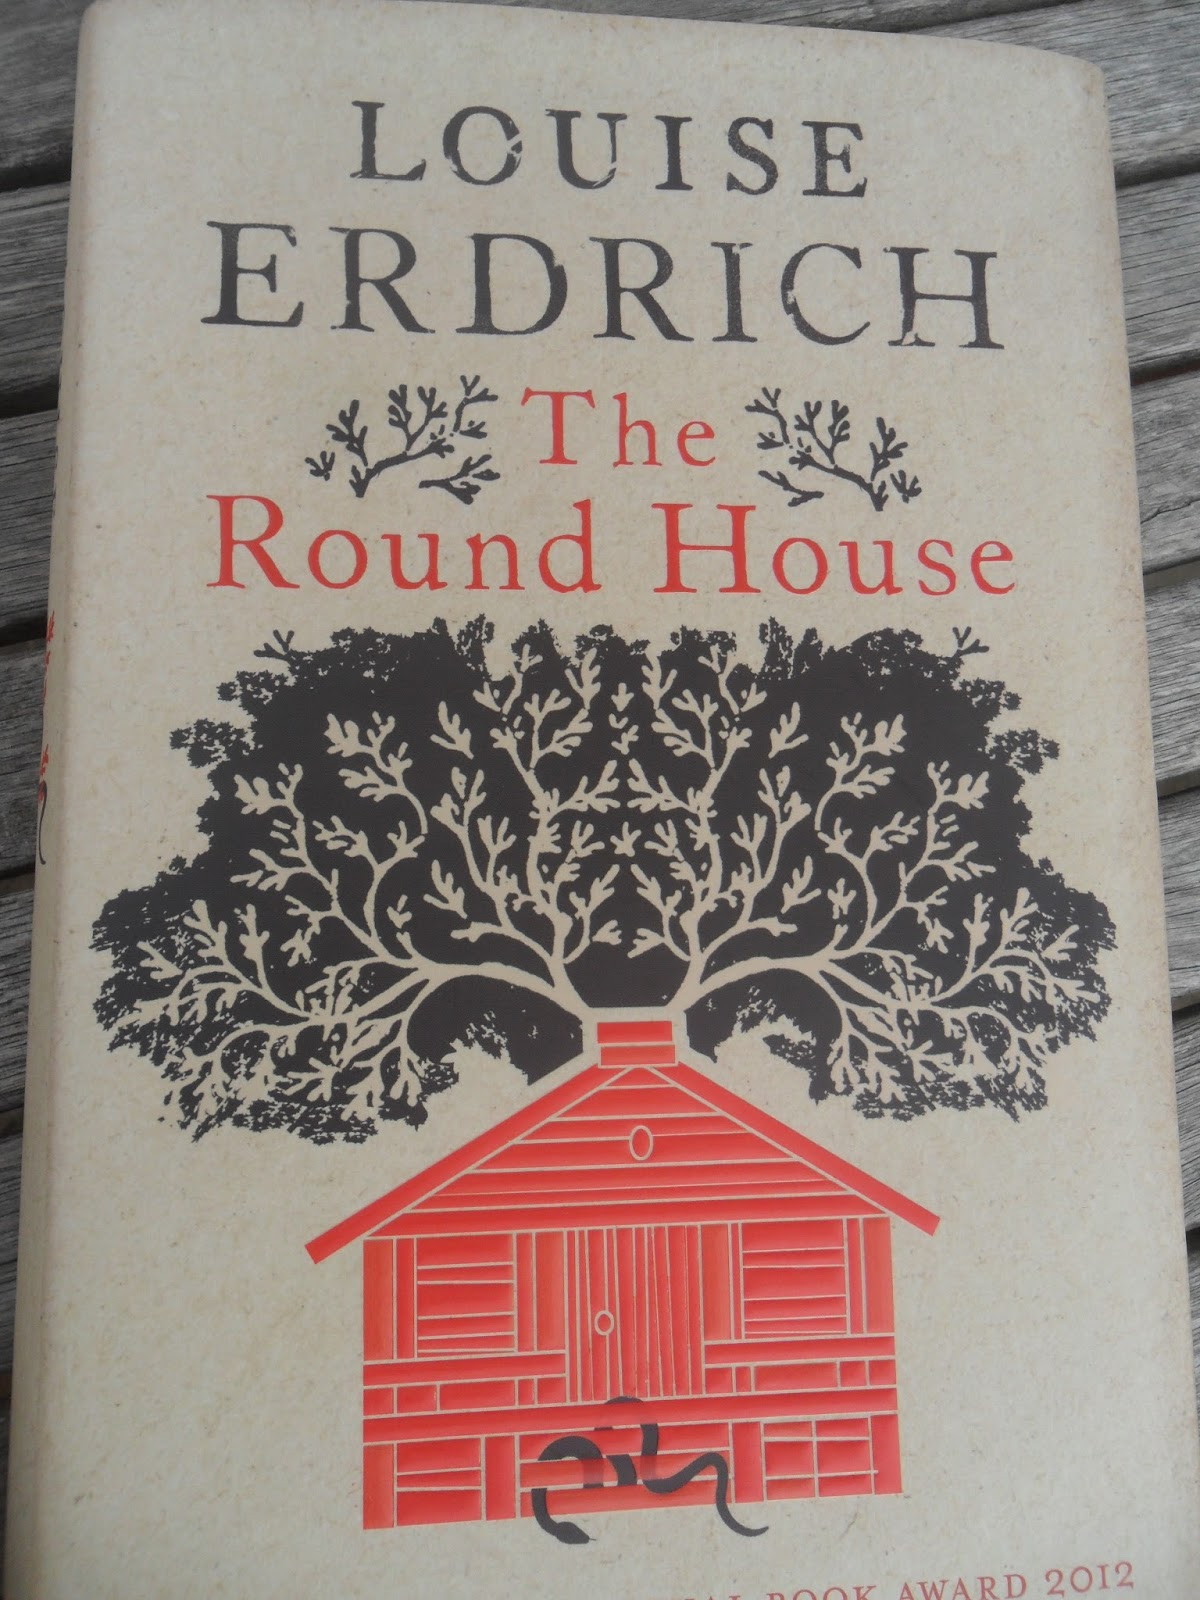 louise erdrich essay Tracks, by louise erdrich, appeared as the third in a tetralogy of works beginning with love medicine, continuing with the beet queen, and ending with the bingo palace all of these novels center on the history of the chippewa or ojibwe tribe located in and around the fictional town of argus, north dakota.